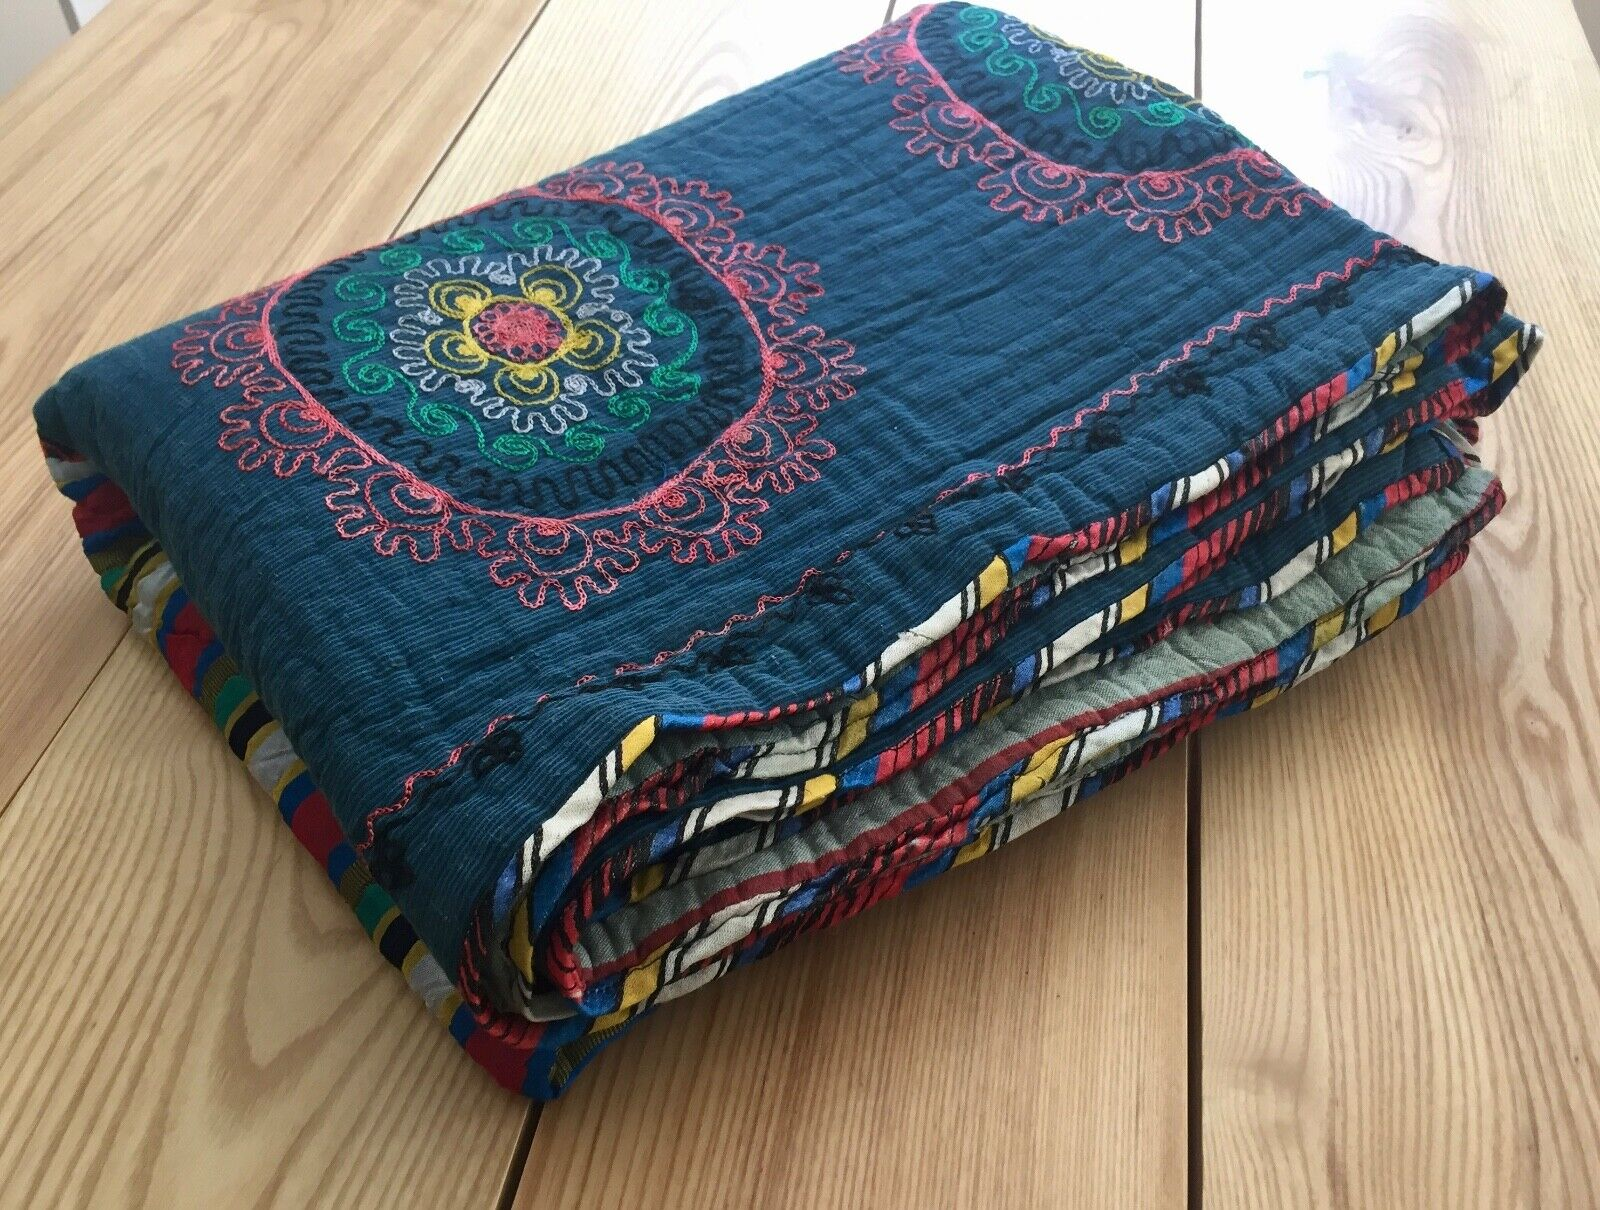 UZBEK VINTAGE EMBROIDErot HAND MADE Quilt Throw Bettding Blanket